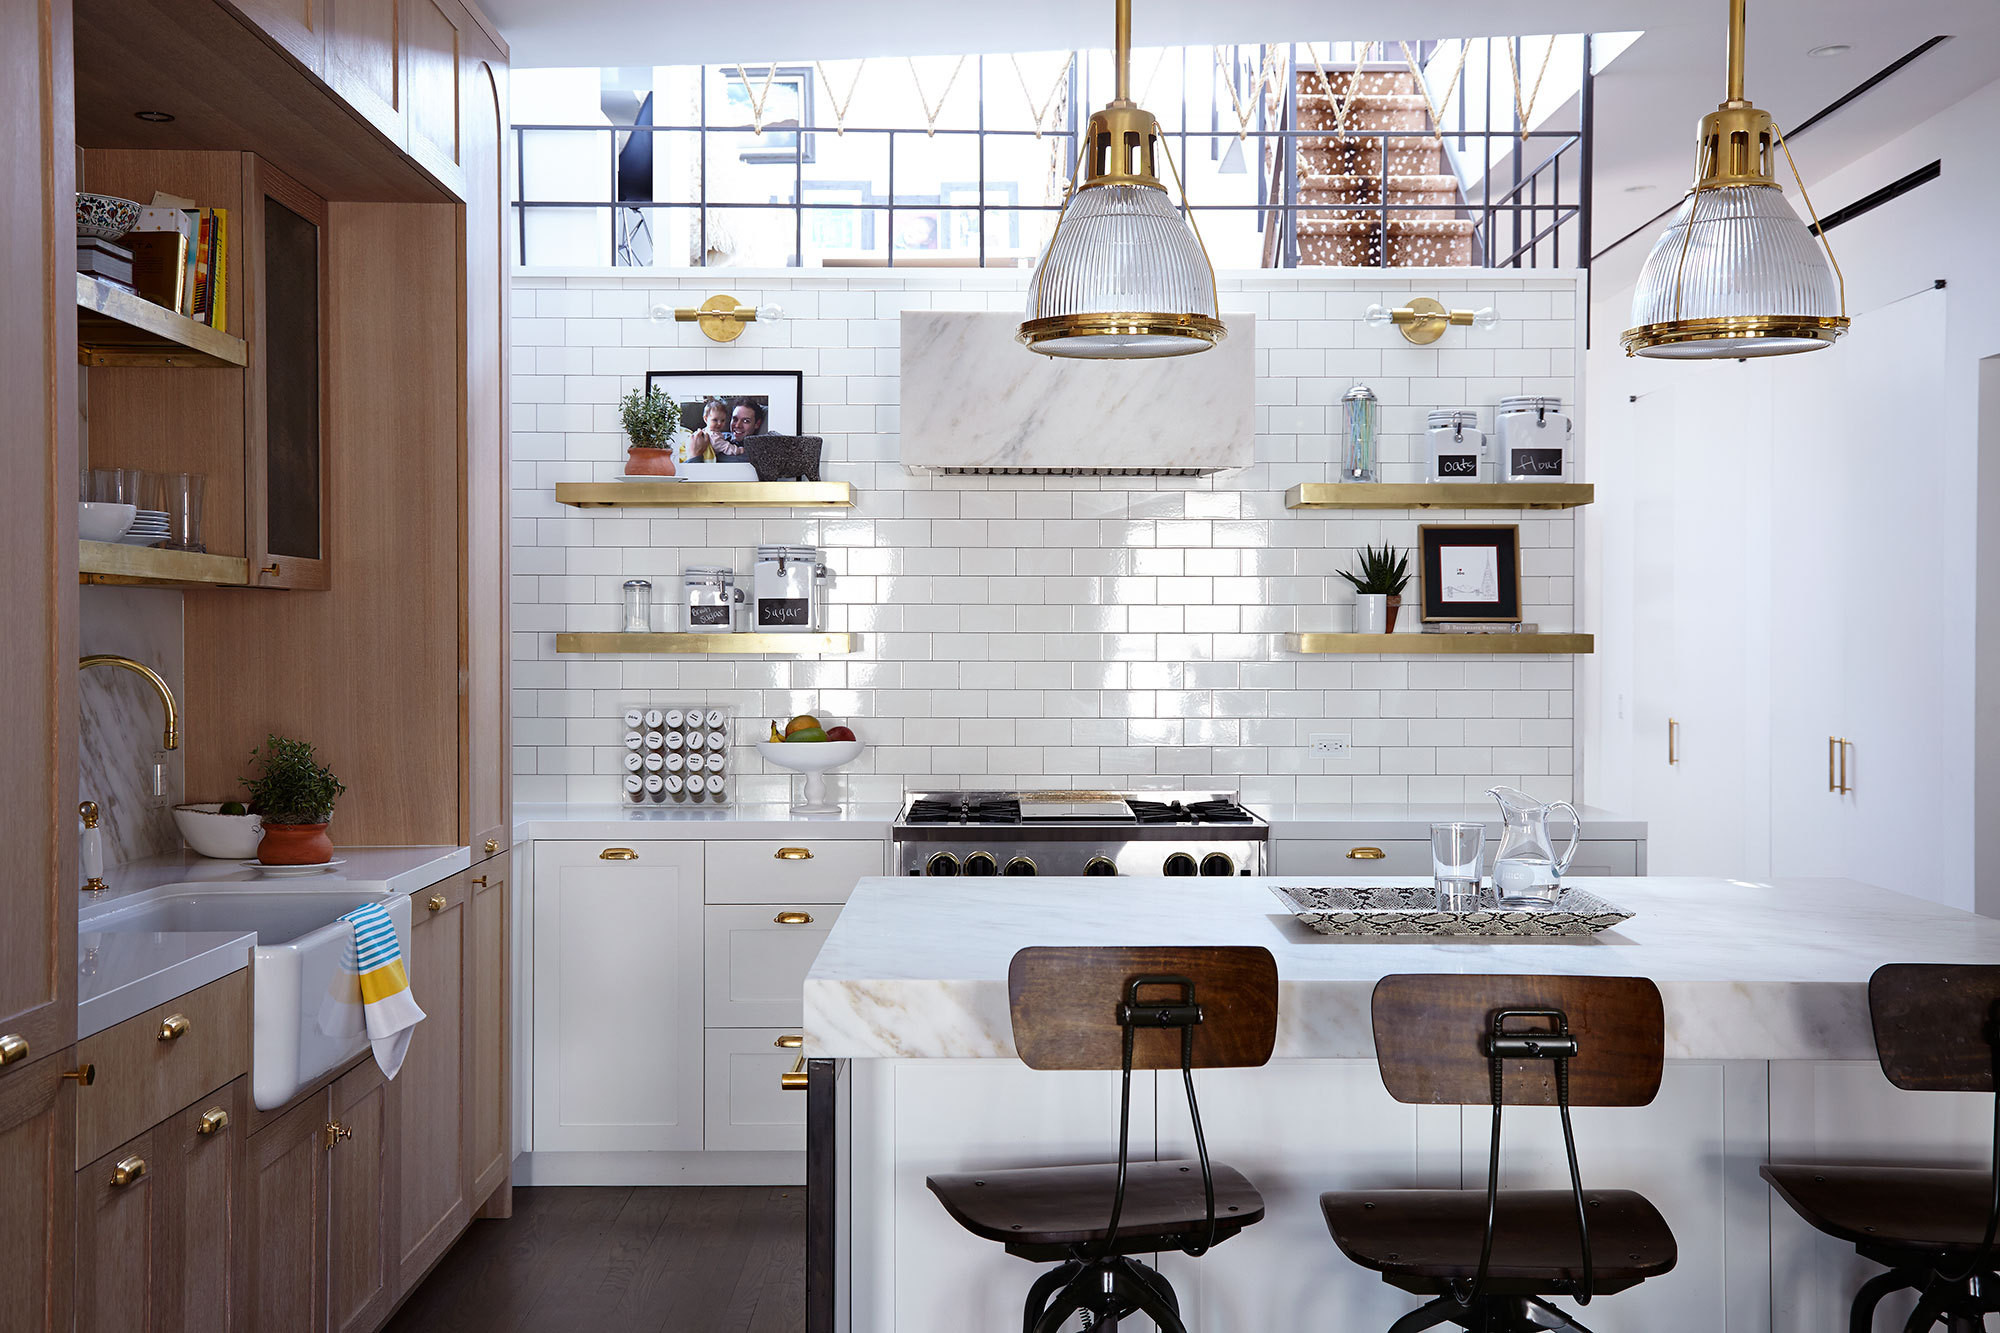 decor nyc new york style in the interior The custom kitchen by Studio DB in a Tribeca, New York City, loft,